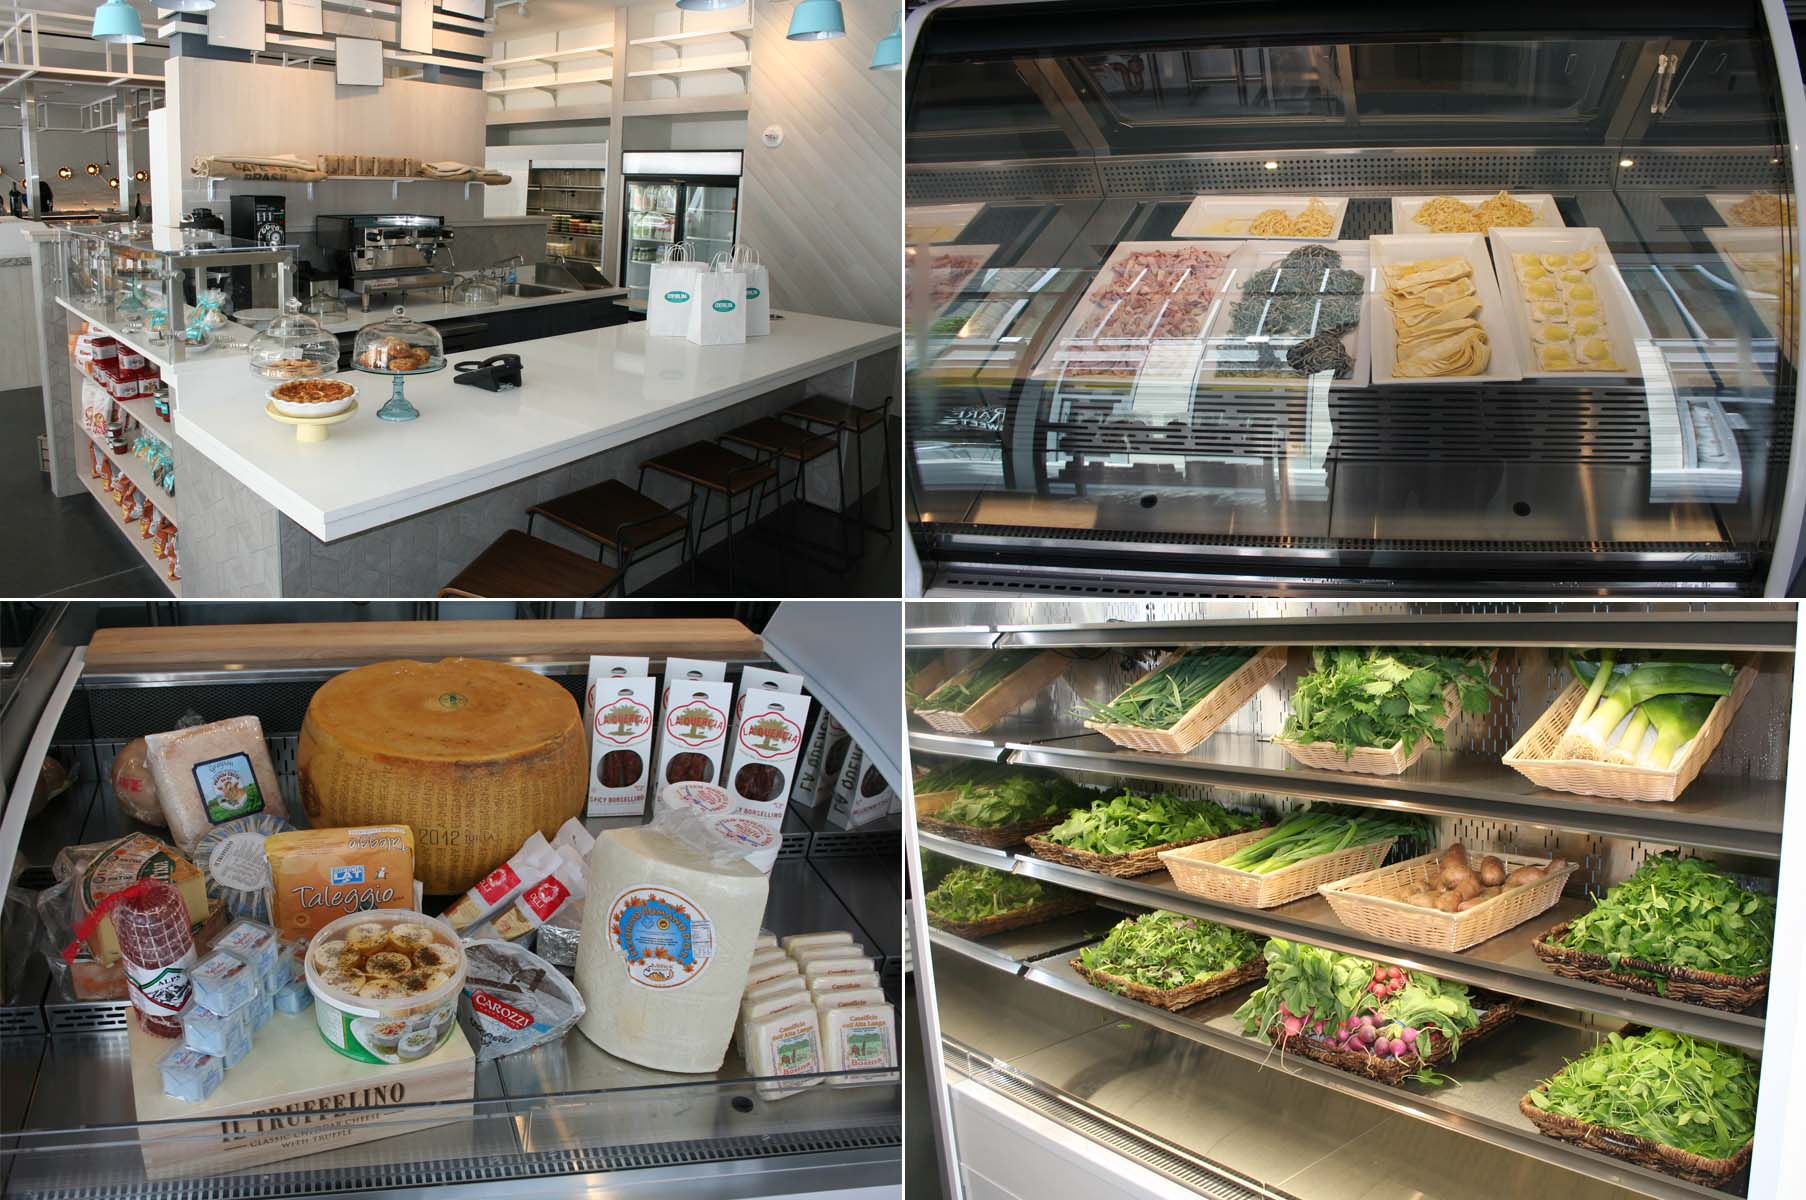 The market's coffee bar (clockwise from top left), fresh pasta case, produce and cheese case. (Photos: Mark Heckathorn/DC on Heels)